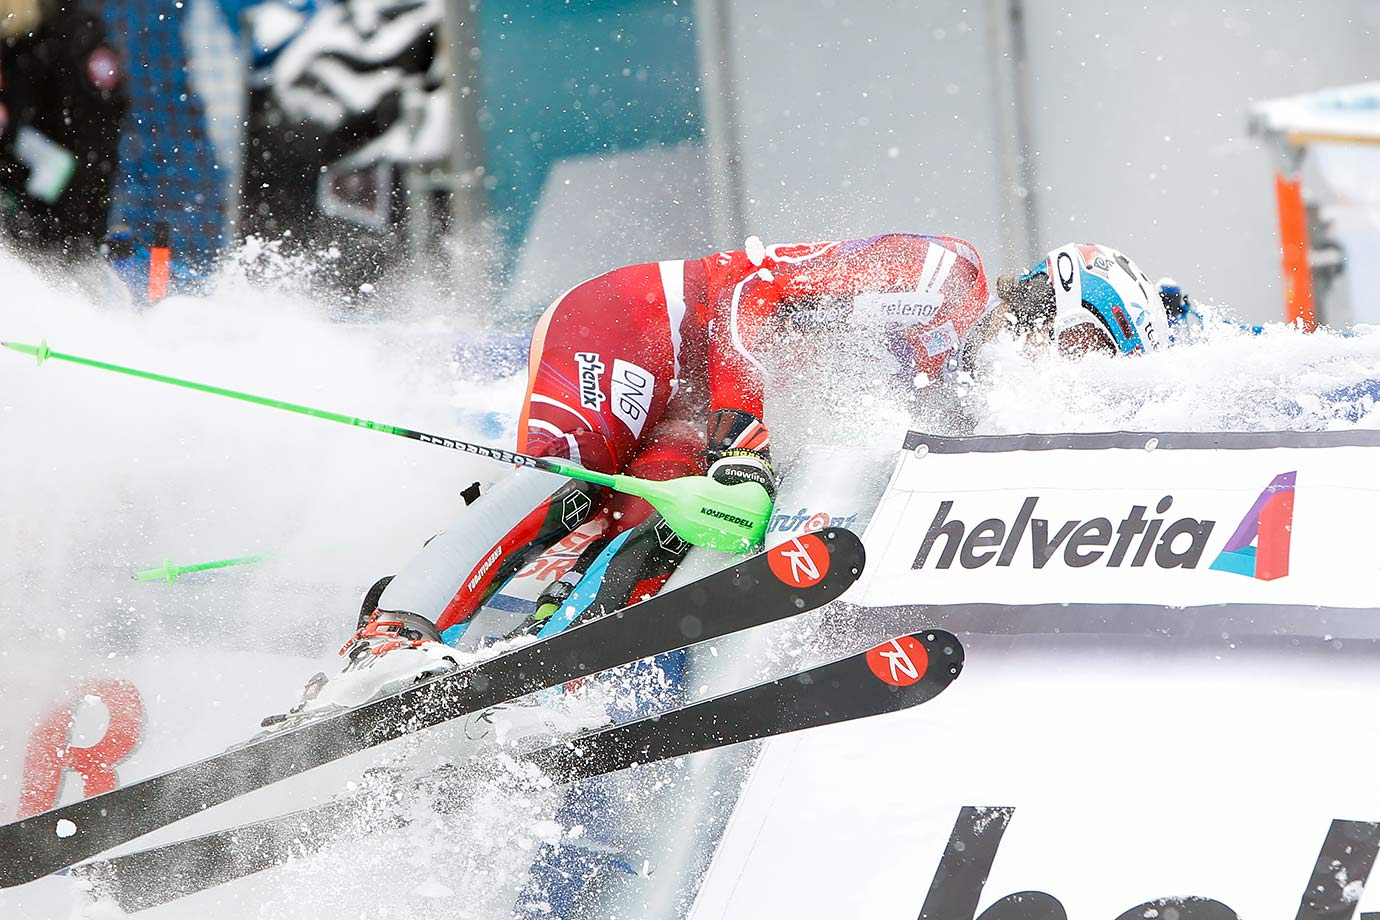 Norway's Henrik Kristoffersen celebrates in odd fashion during the Audi FIS Alpine Ski World Cup Men's Slalom in Switzerland.